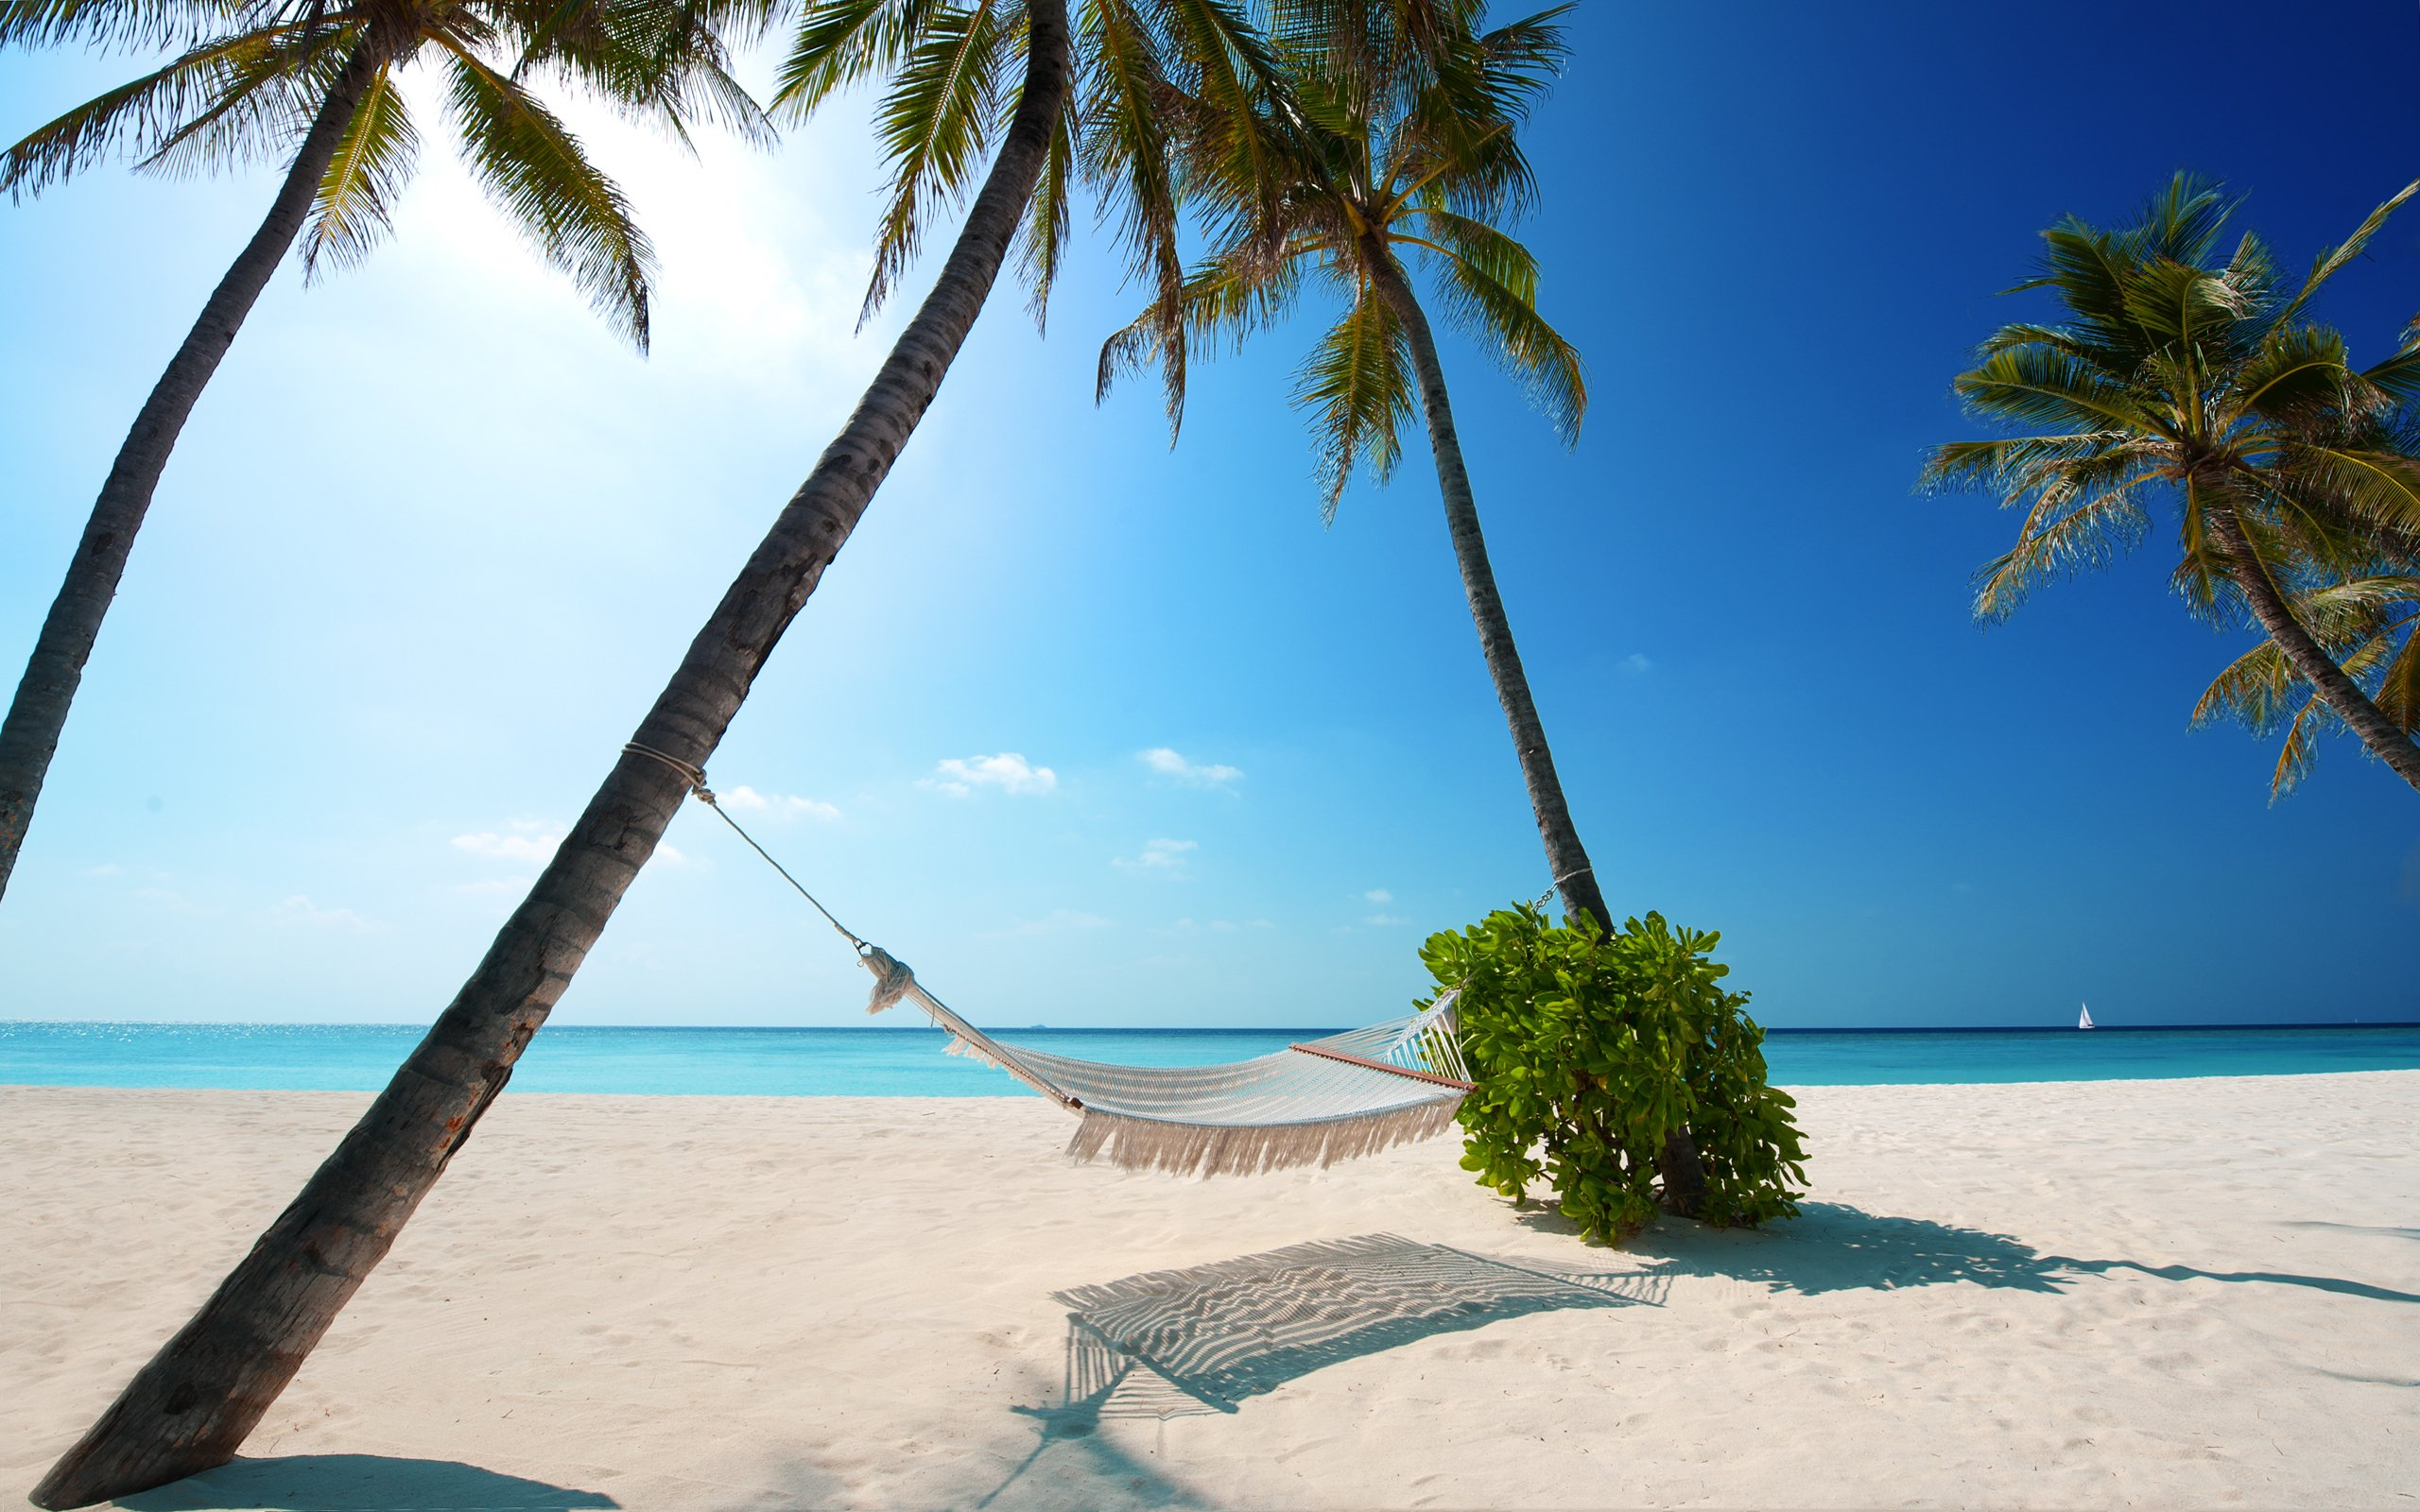 Beautiful Vacation Wallpaper 46328 2560x1600px 2560x1600